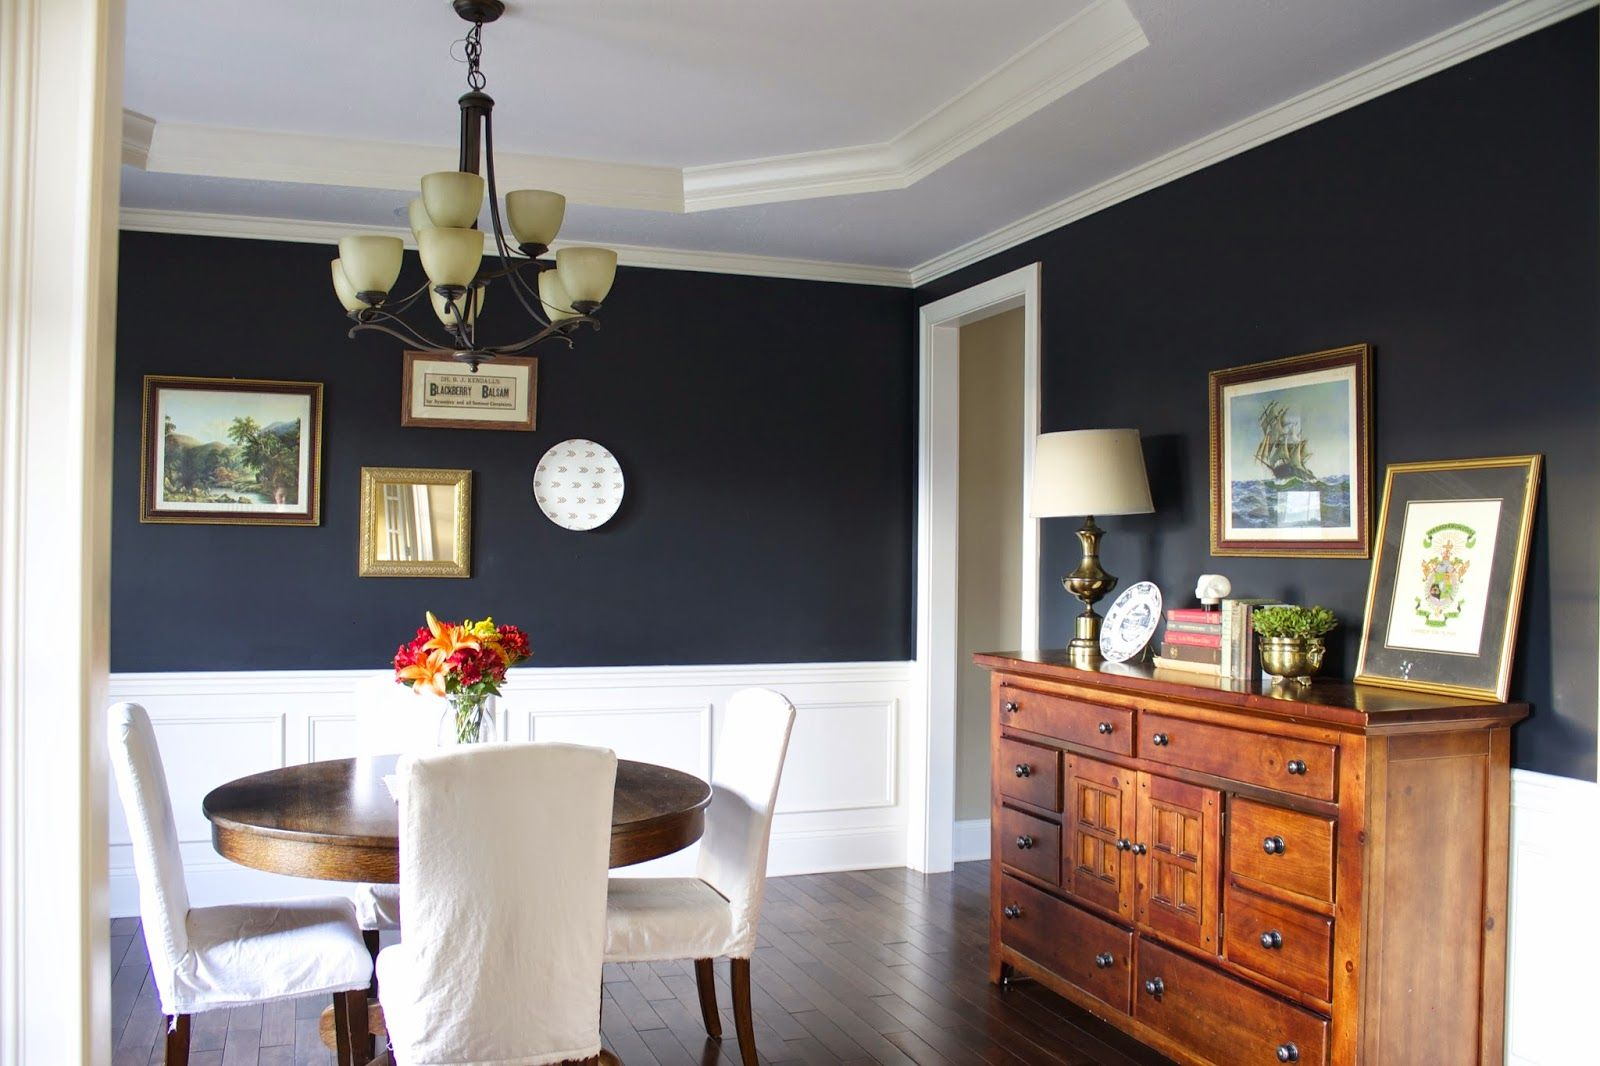 Color Ideas For Dining Room Walls Mesmerizing Sherwin Williams Inkwell Navy Dining Room Paint Colorsite Full Design Ideas